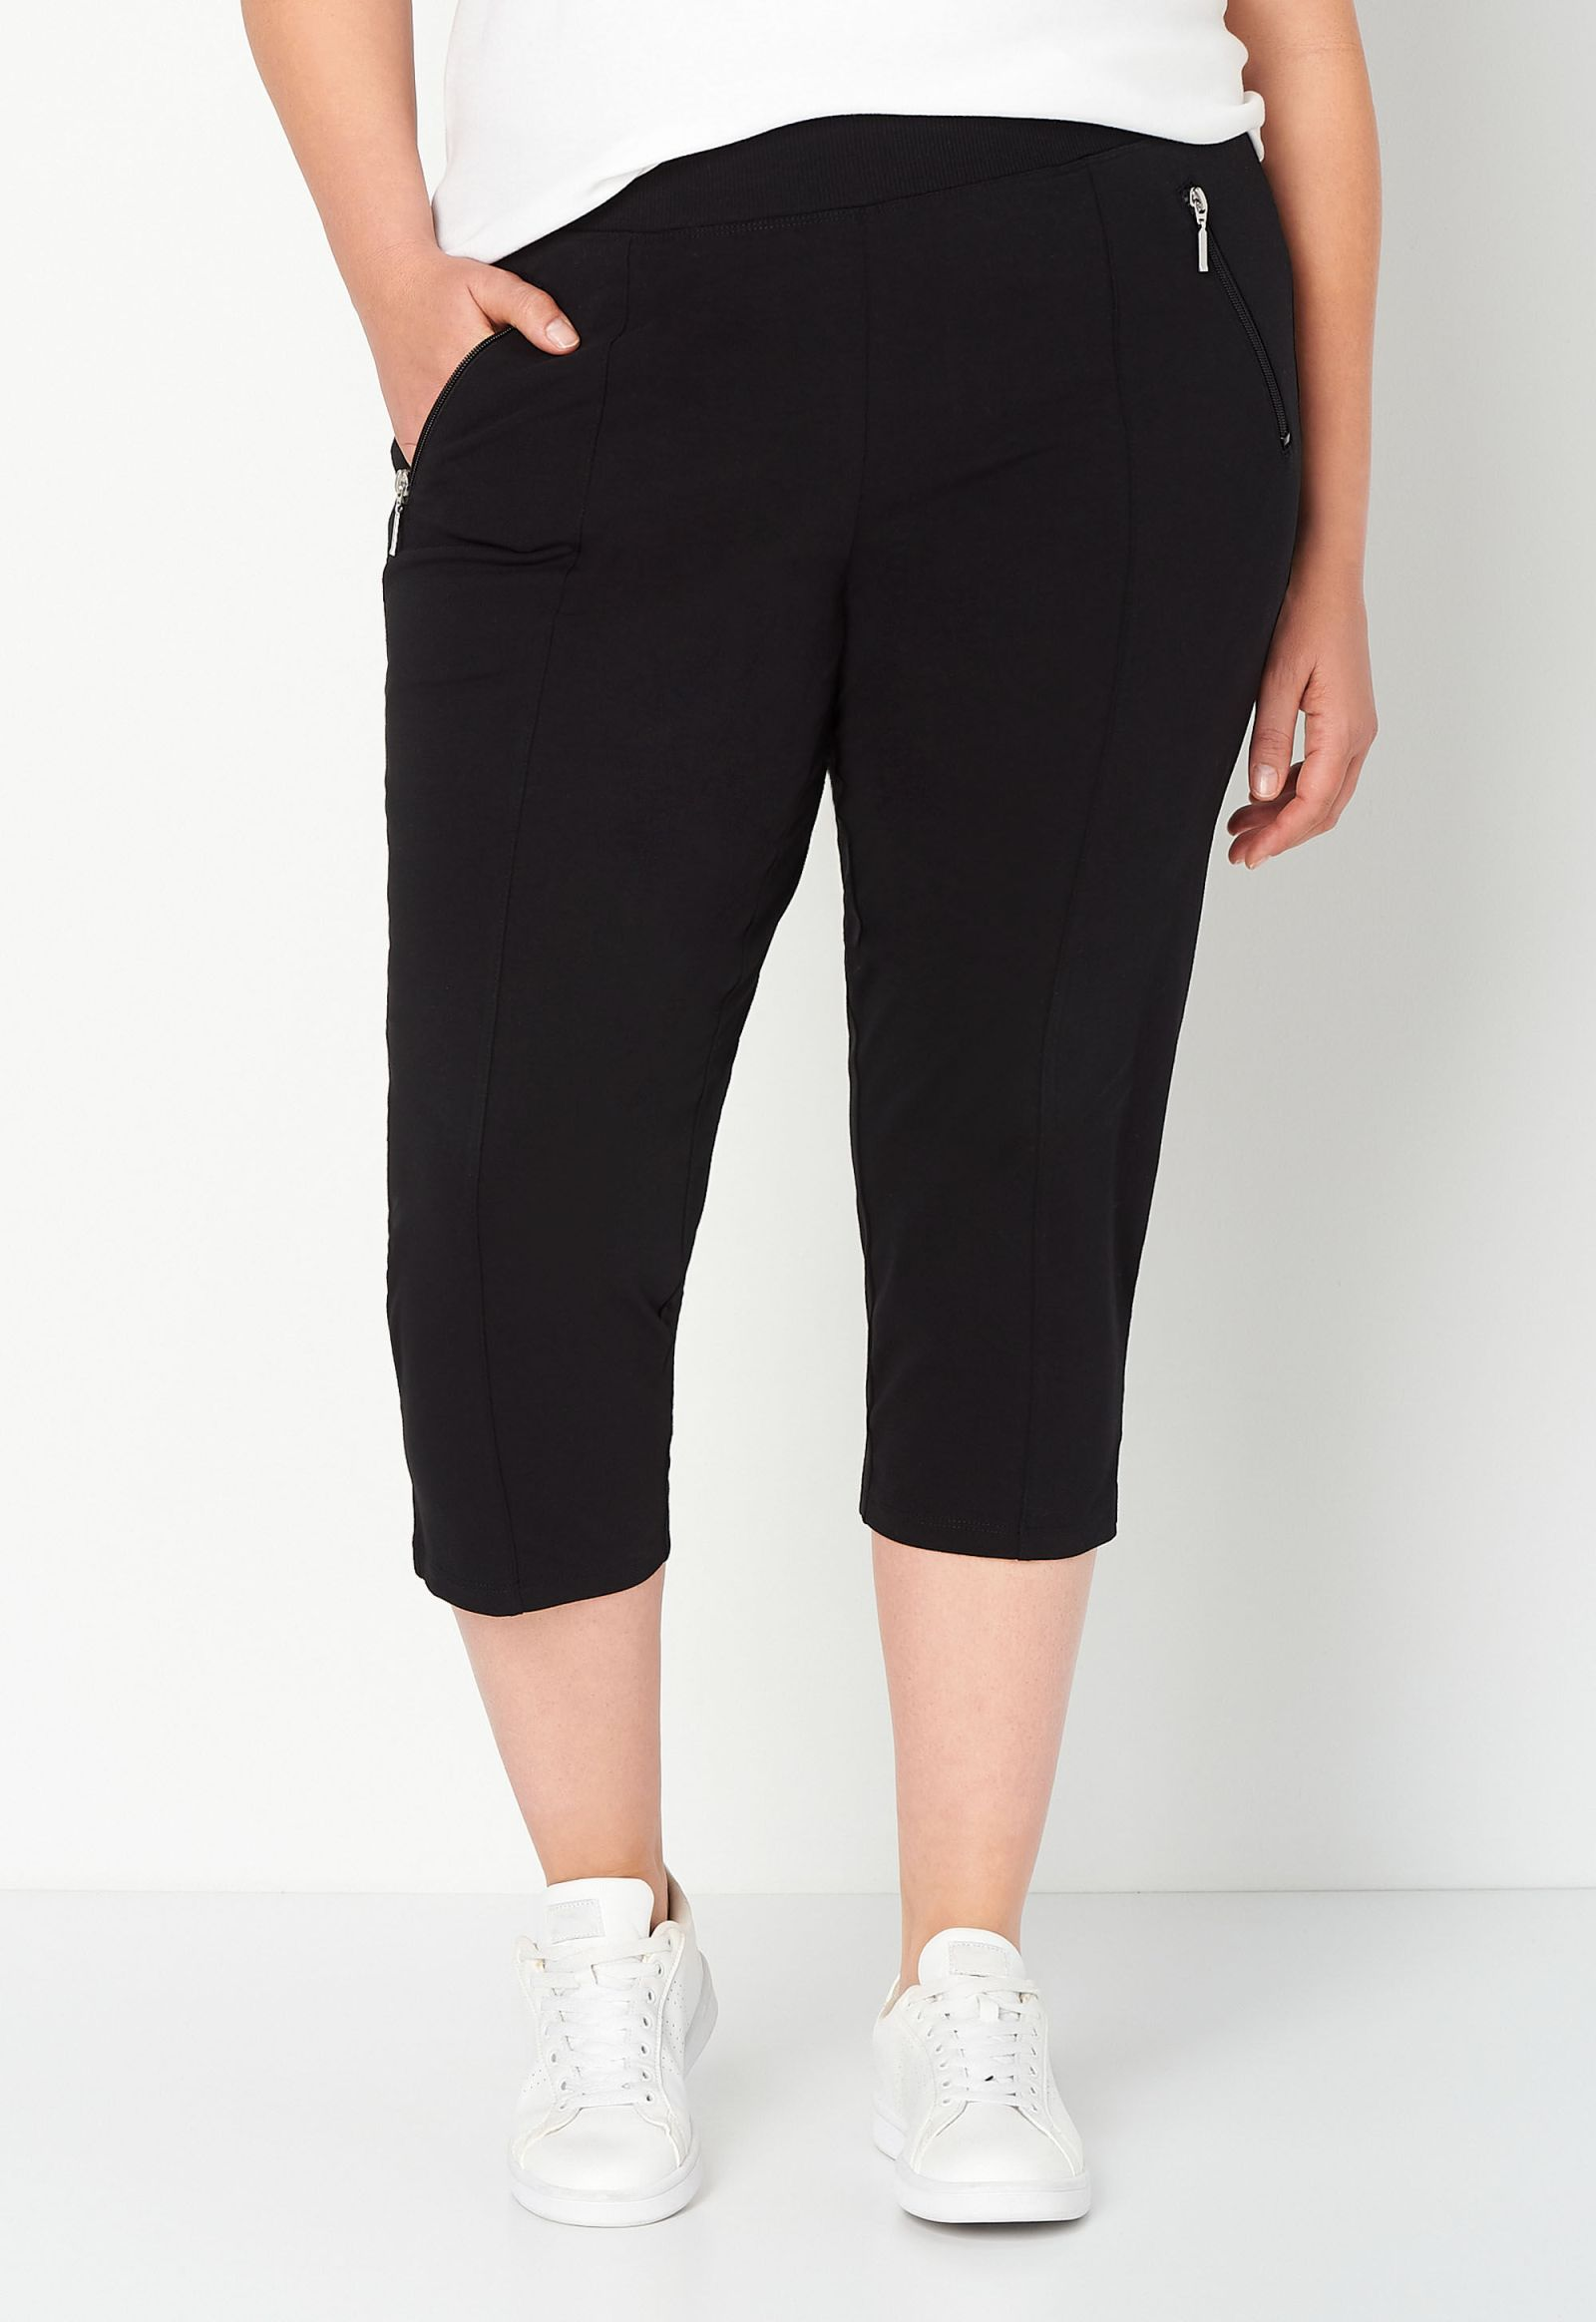 Relaxed Restyled Plus Size Zipper Pockets Capri 2